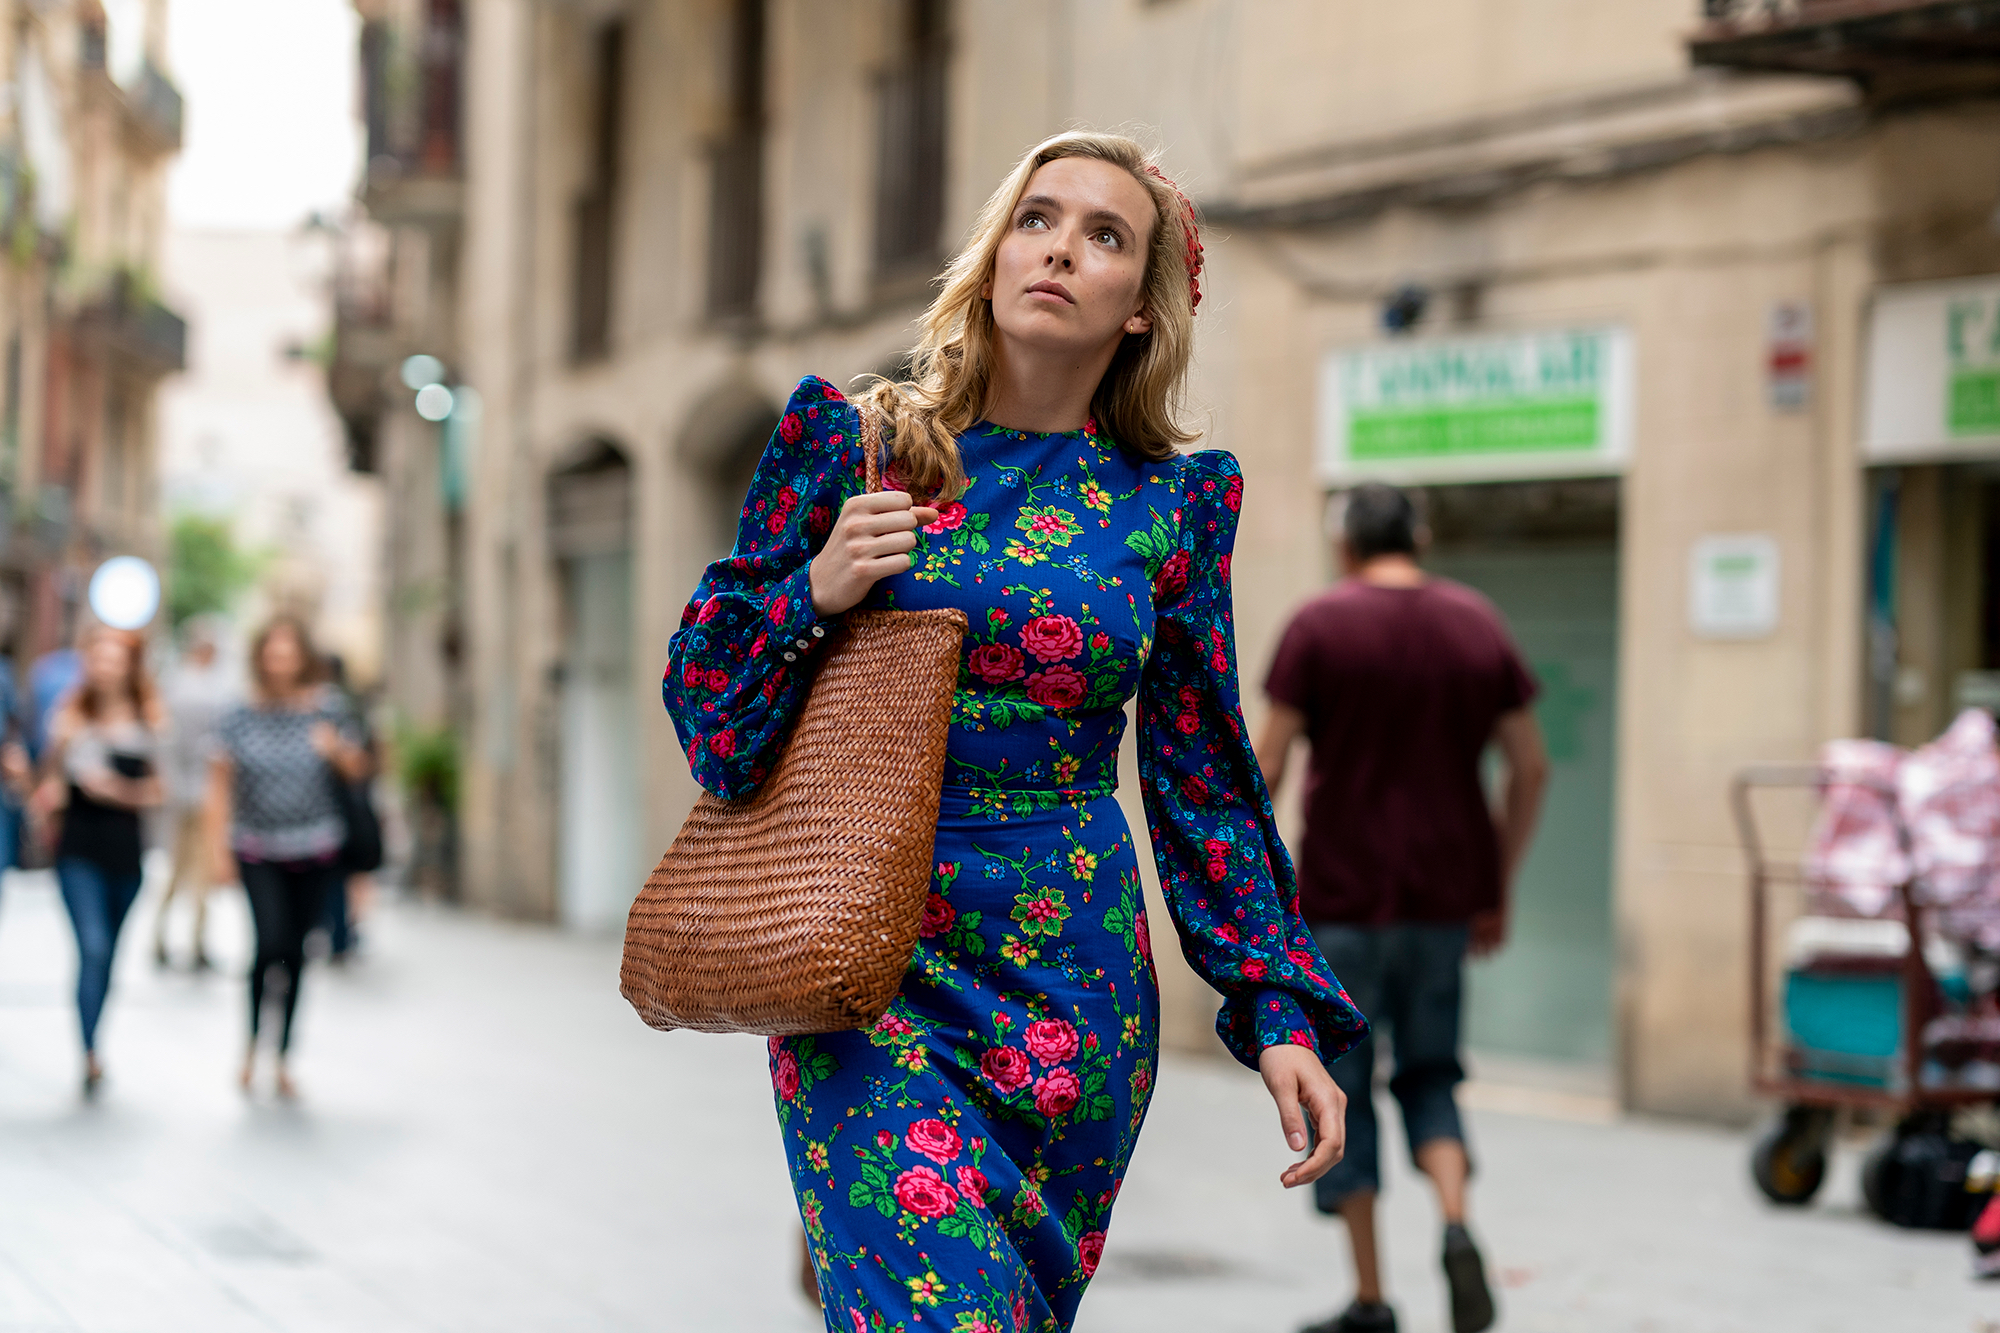 Jodie Comer in Killing Eve on OSN